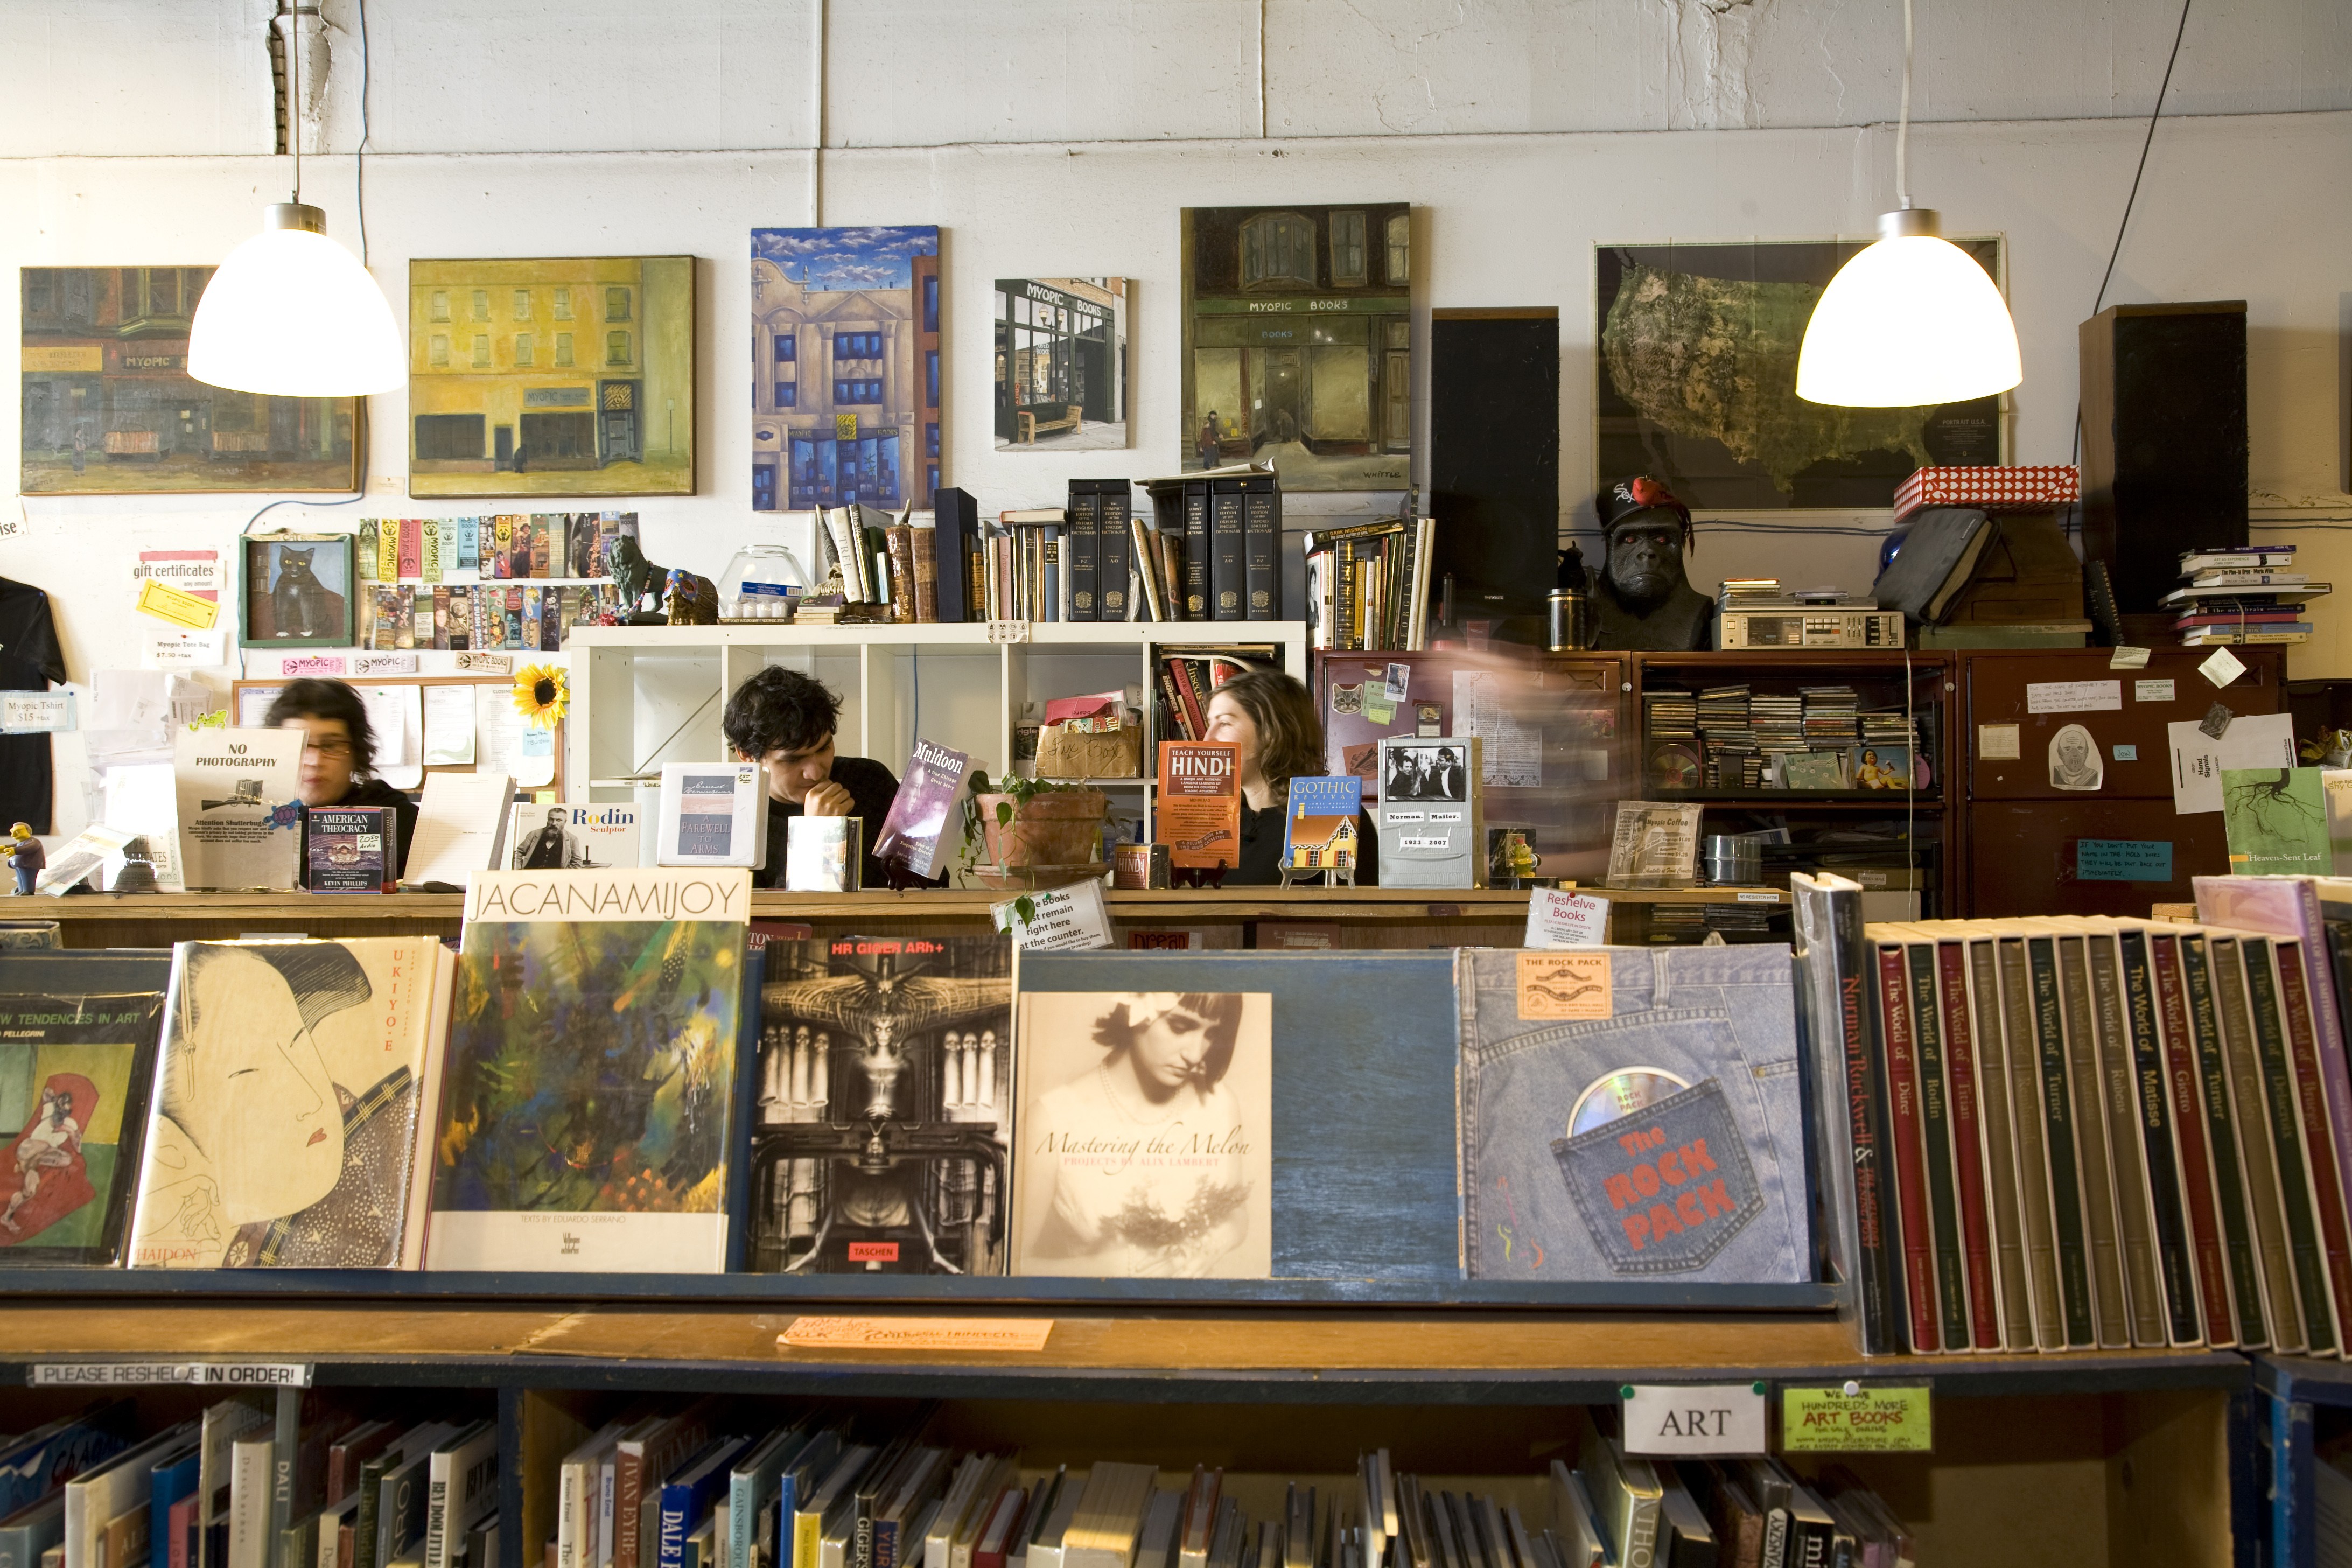 Books for sale at Myopic Books, with employees behind counter, Wicker Park.